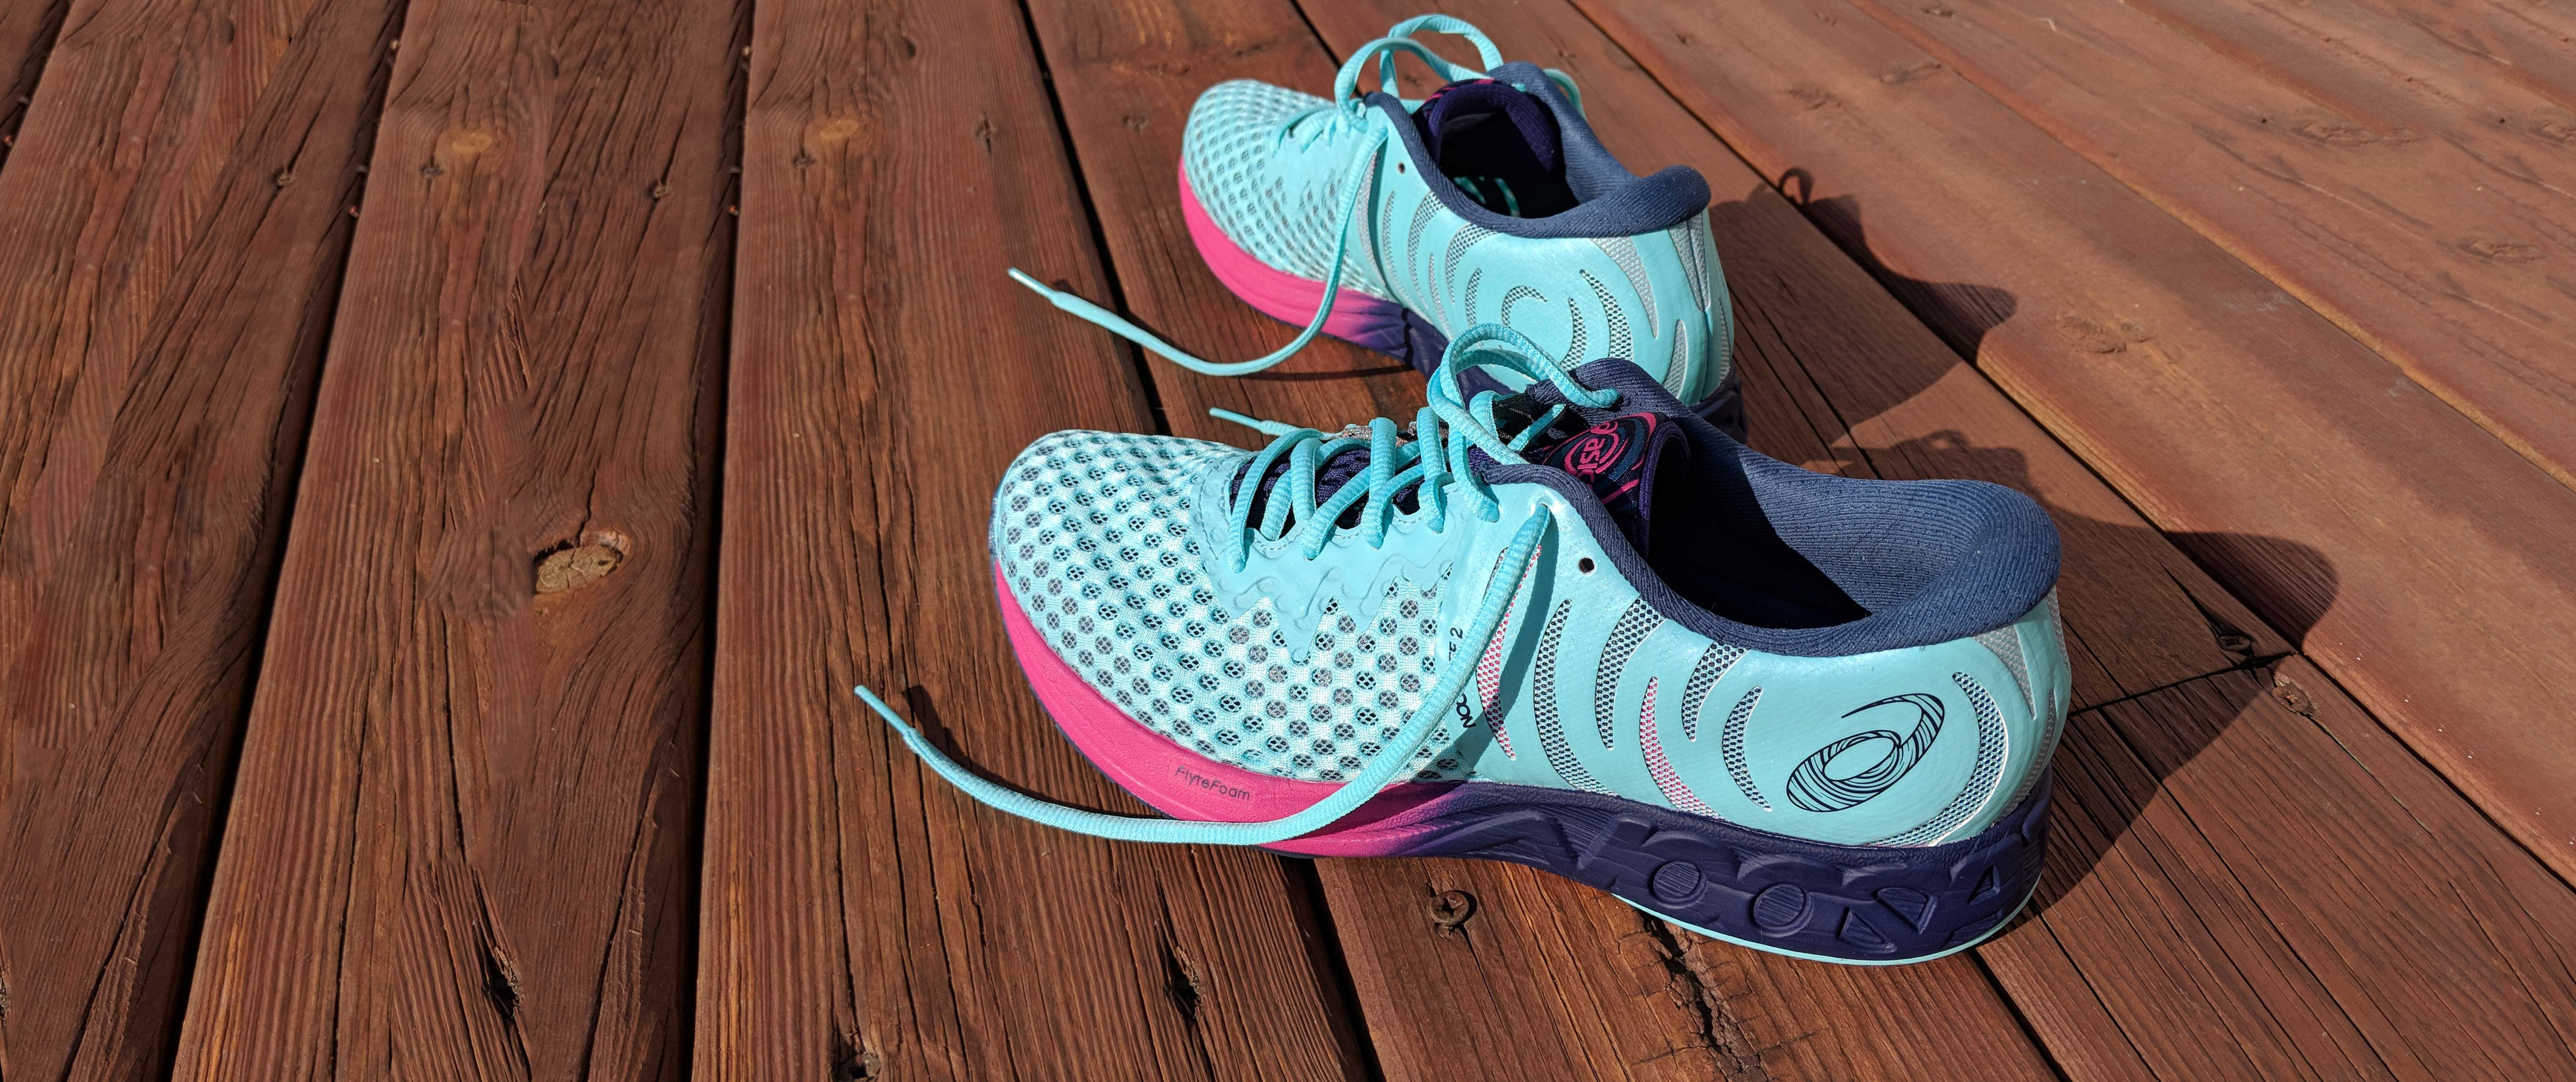 Asics Noosa FF 2 - Fitness Review